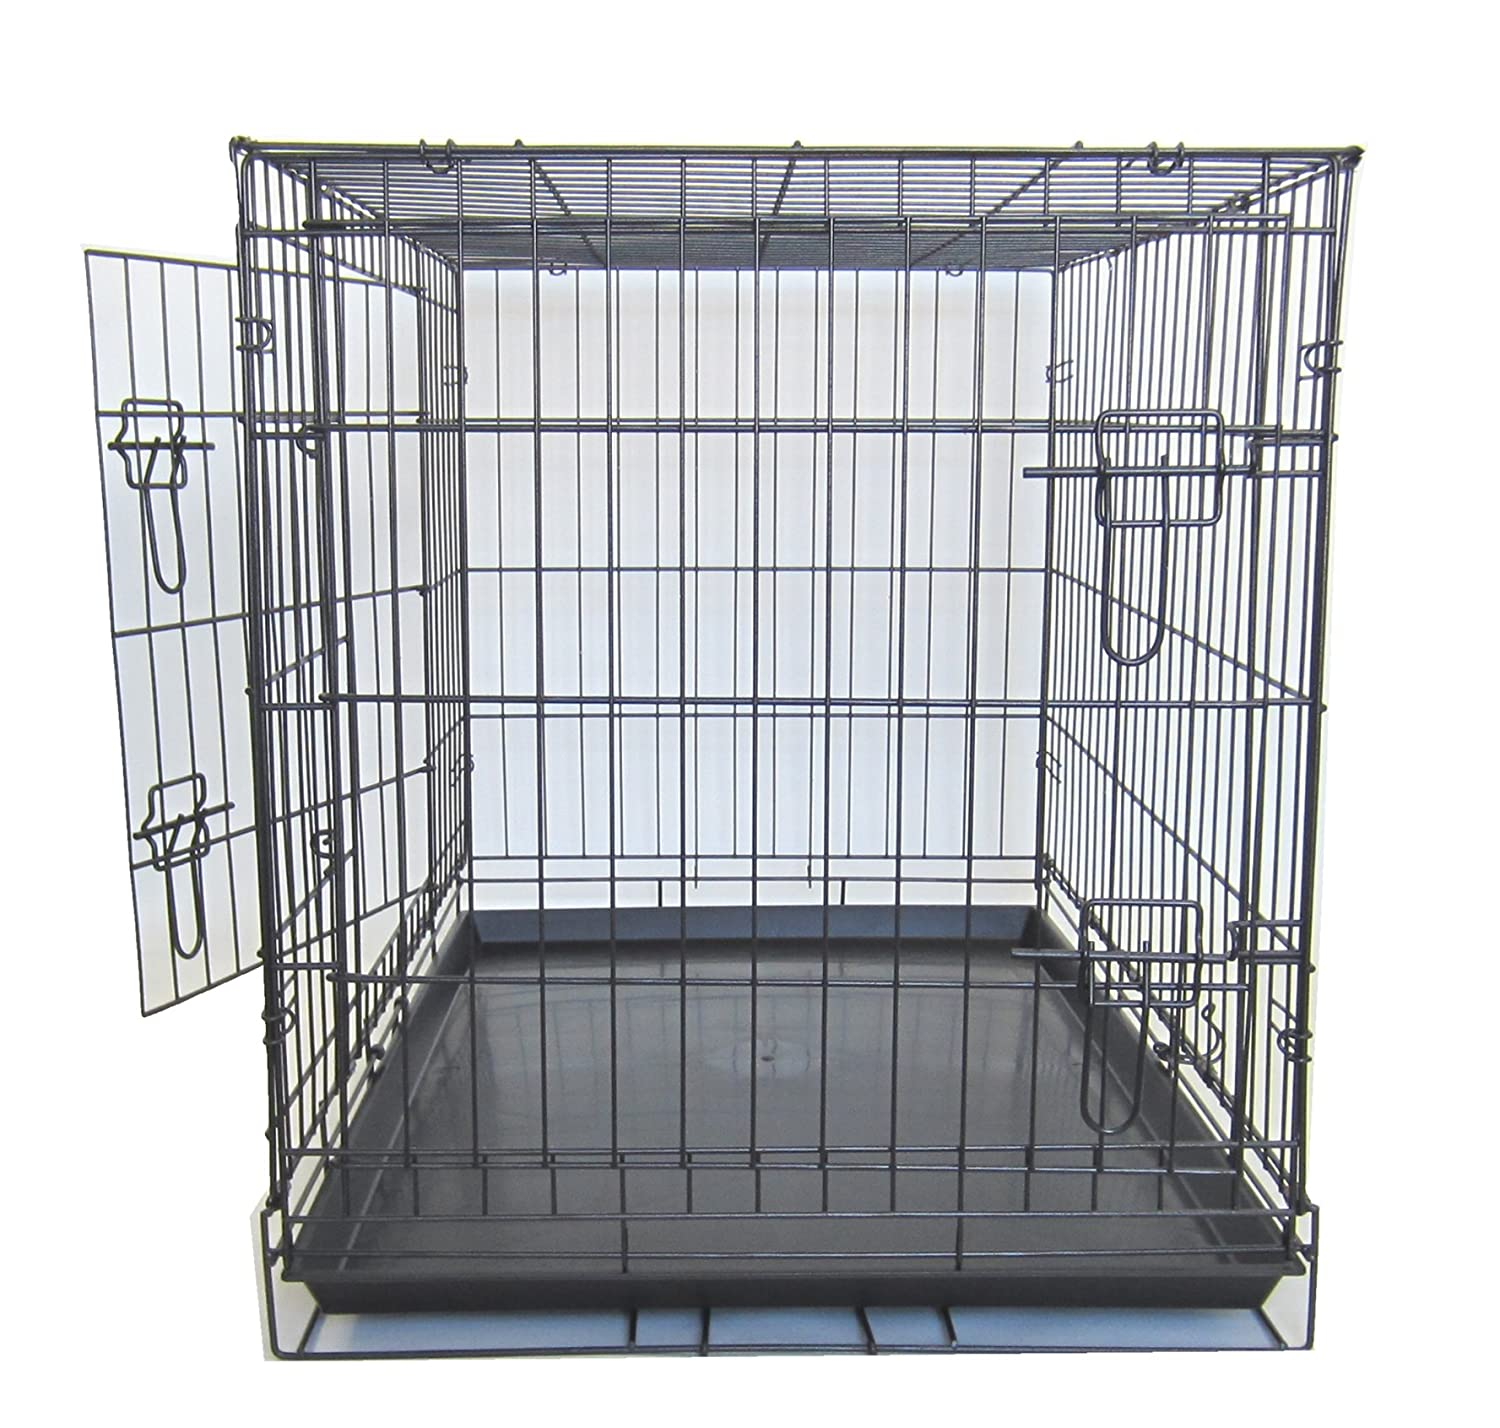 Black YML SA36 36-Inch Double Door Dog Kennel Cage with Plastic Tray No Bottom Wire